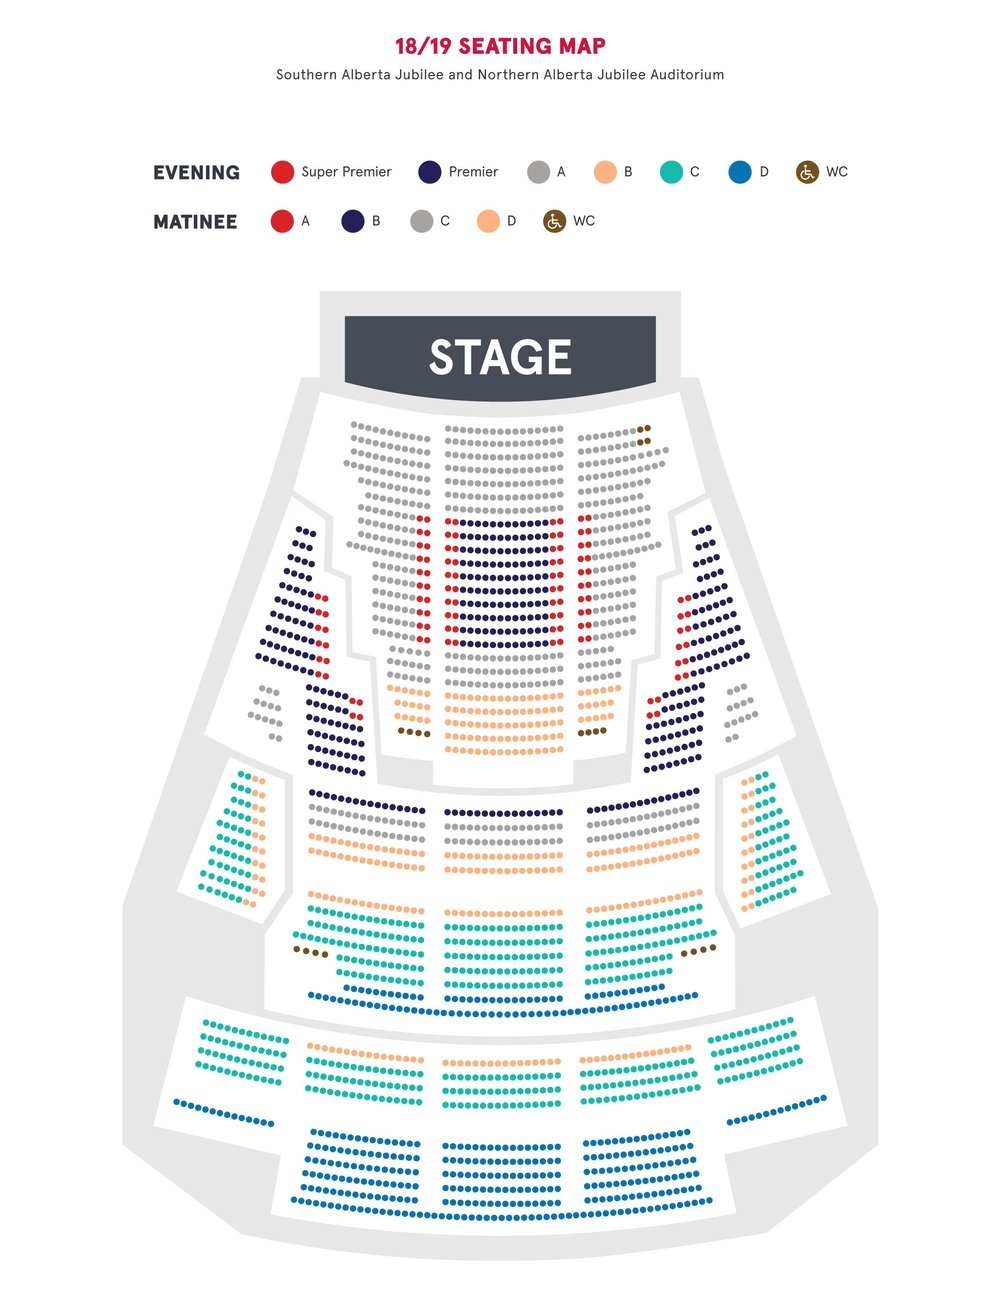 18_19_JUBE-SEATING-MAP-2500x3250.jpg